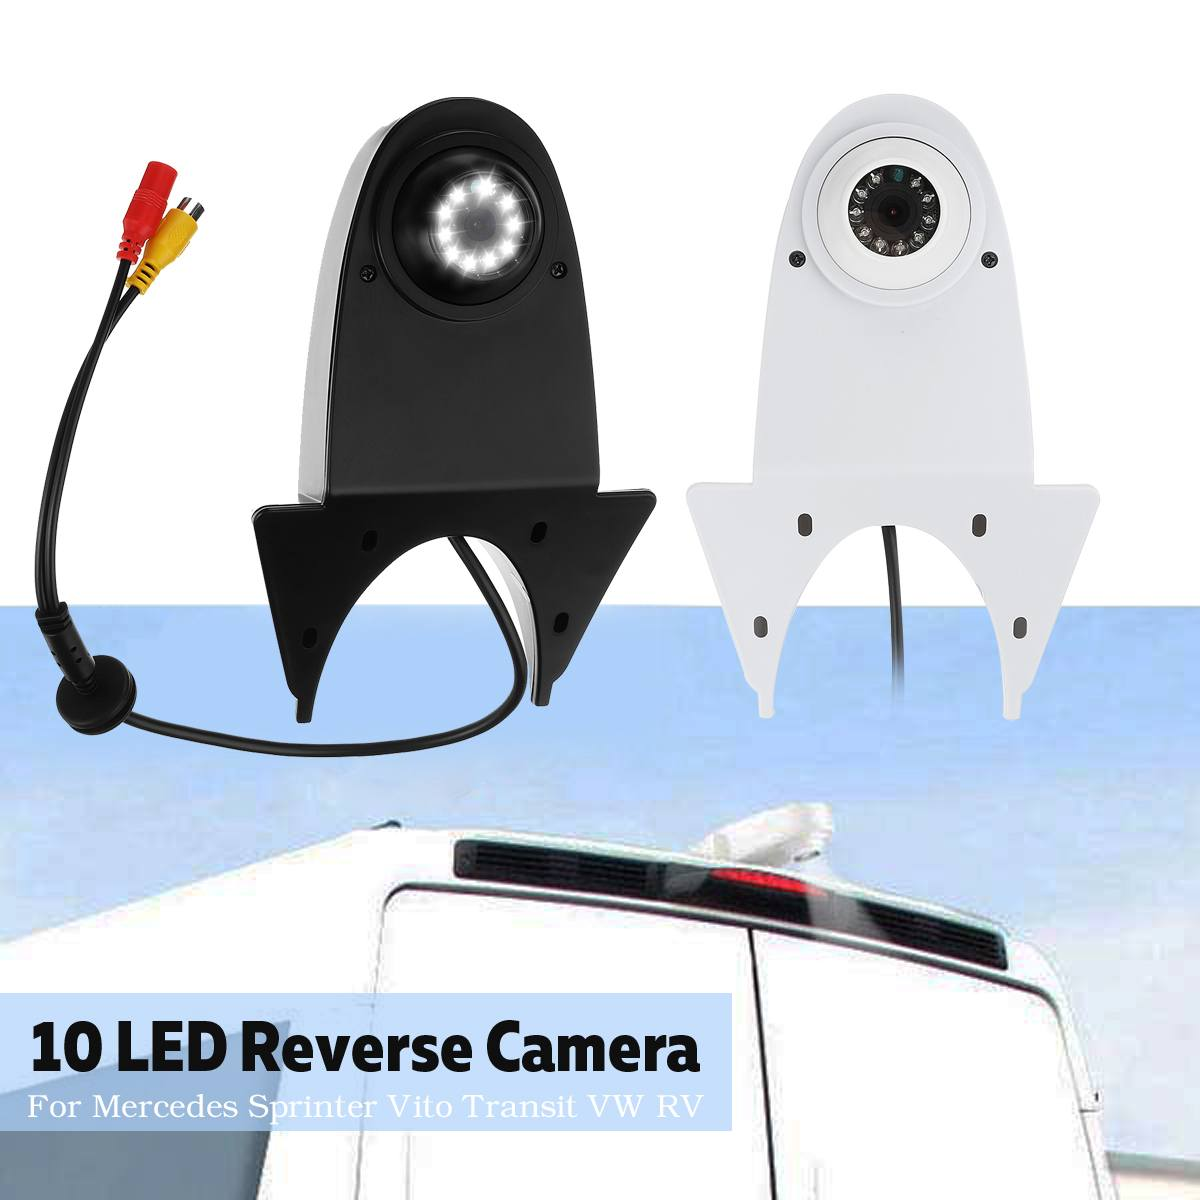 Reversing Vehicle-Specific Camera Integrated in Number Plate Light License Rear View Backup Camera for Mercedes Benz C Class W204 C180 C200 C280 C300 C350 C63 AMG 2007-2014 E-Class W212 2009-2015